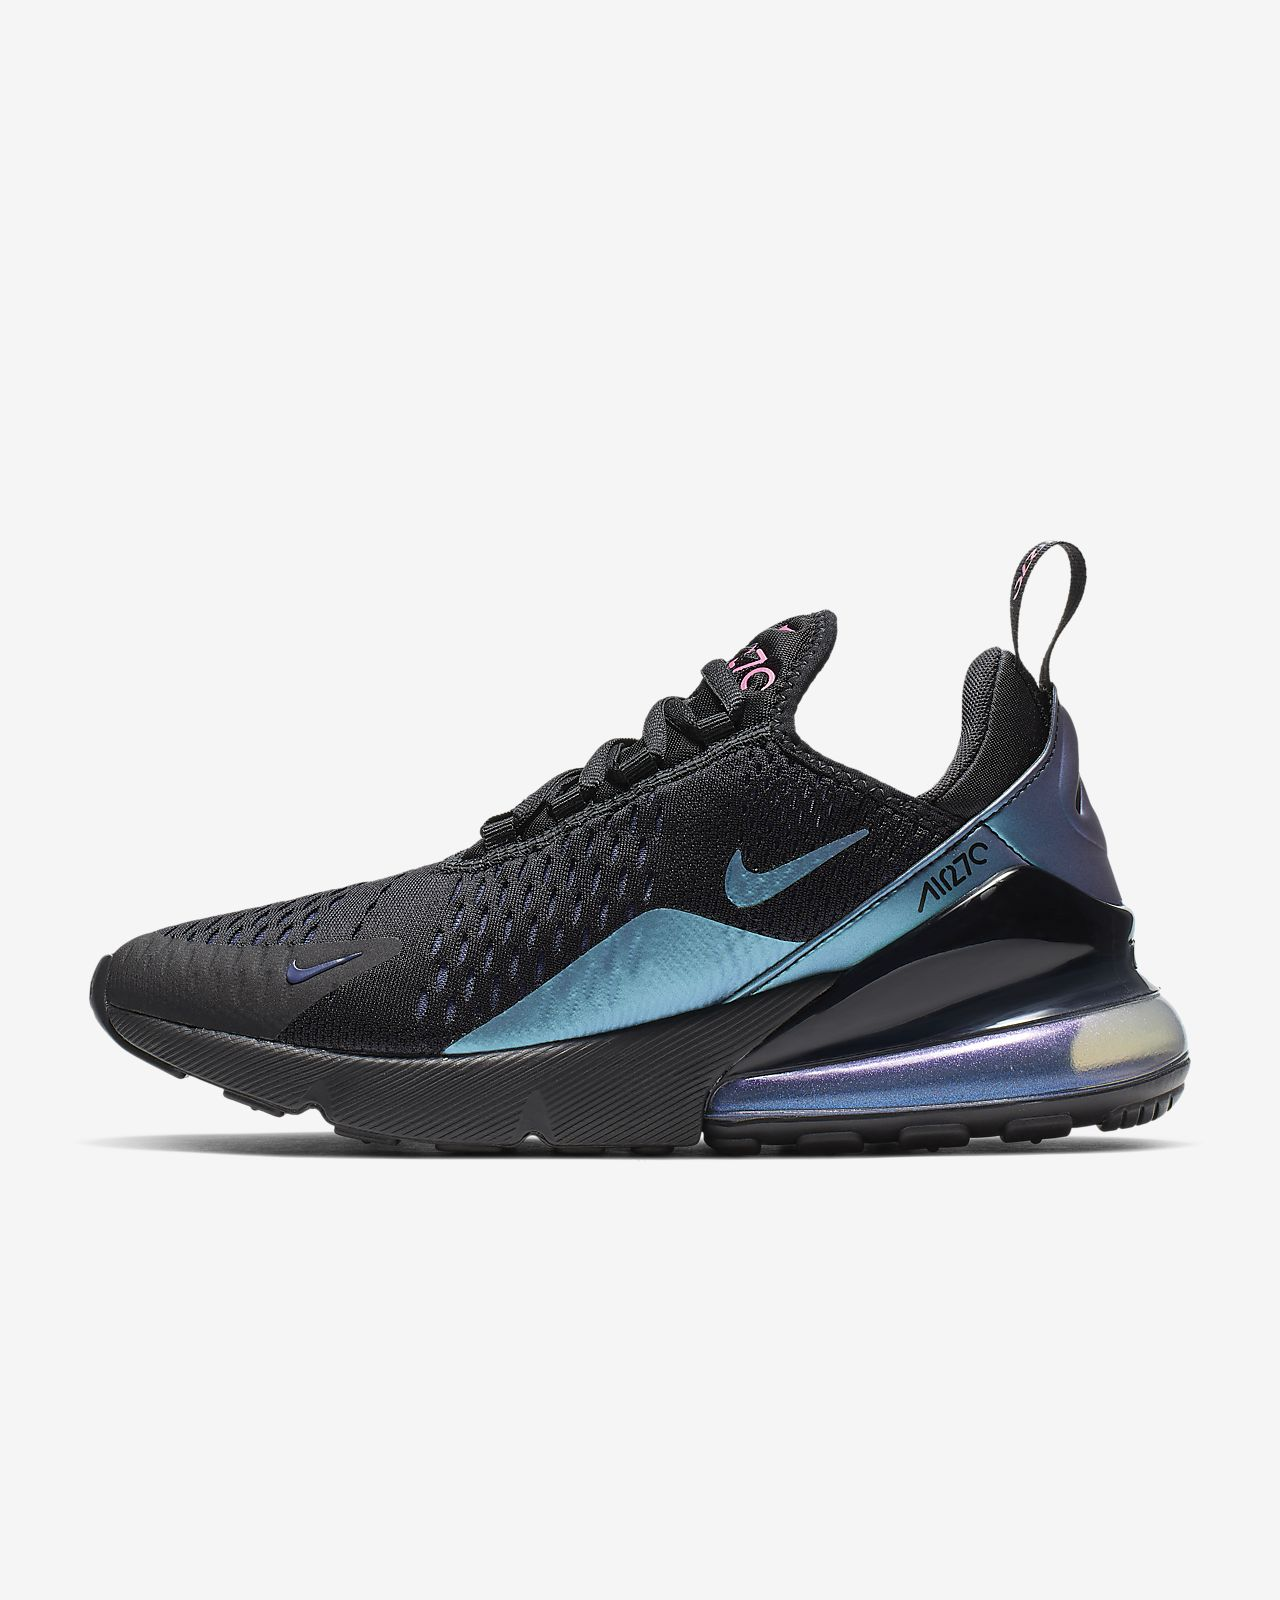 68074c9ec014a1 Low Resolution Nike Air Max 270 Damenschuh Nike Air Max 270 Damenschuh